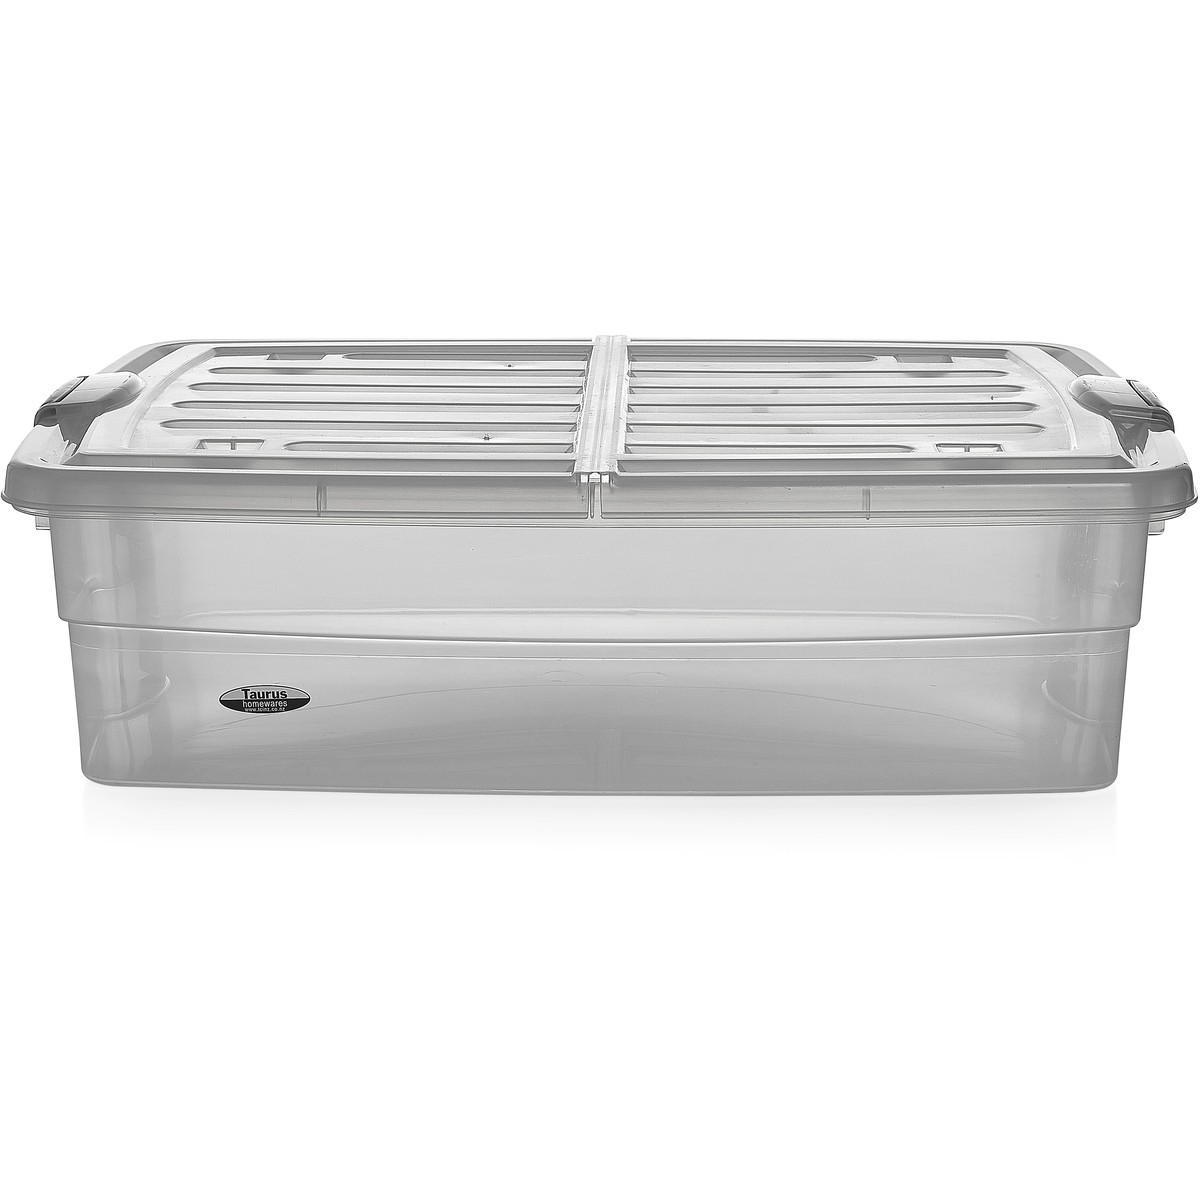 Big W Bed Smart Value Under Bed Plastic Container 36l Big W